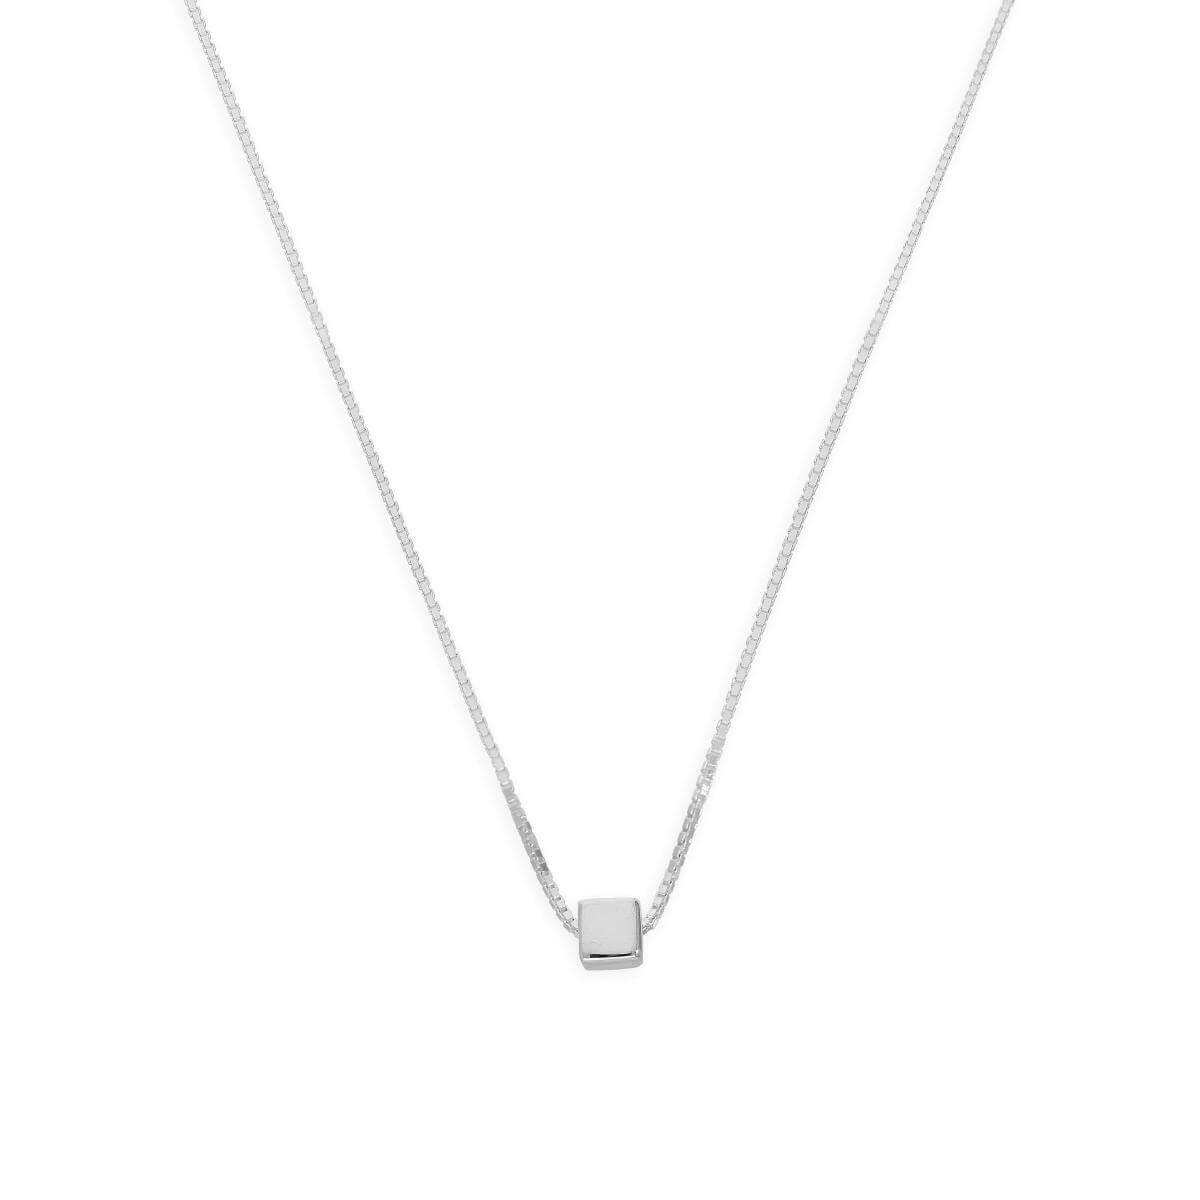 Sterling Silver 18 Inch Box Chain Necklace w Cube Bead